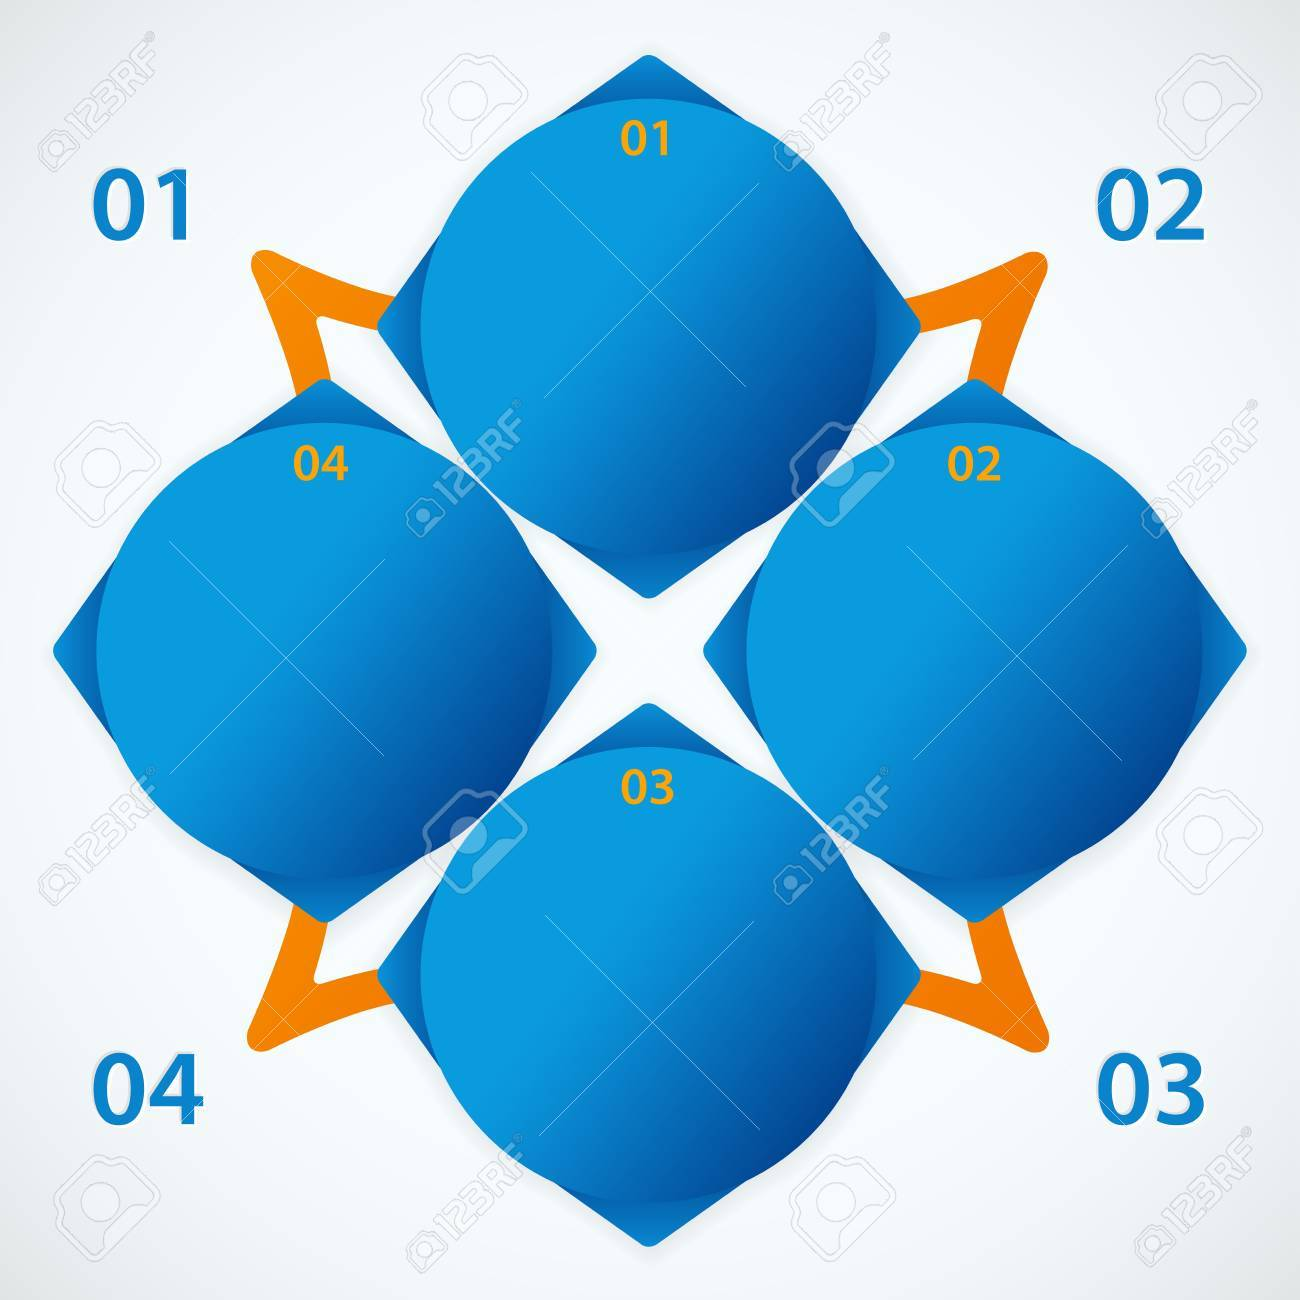 Abstract blue and orange elements with info and numbers  Useful for banner design, business concept, website or web ad  Creative Illustration with numbers, arrows and place for text  Vector EPS 10 Stock Vector - 17491469